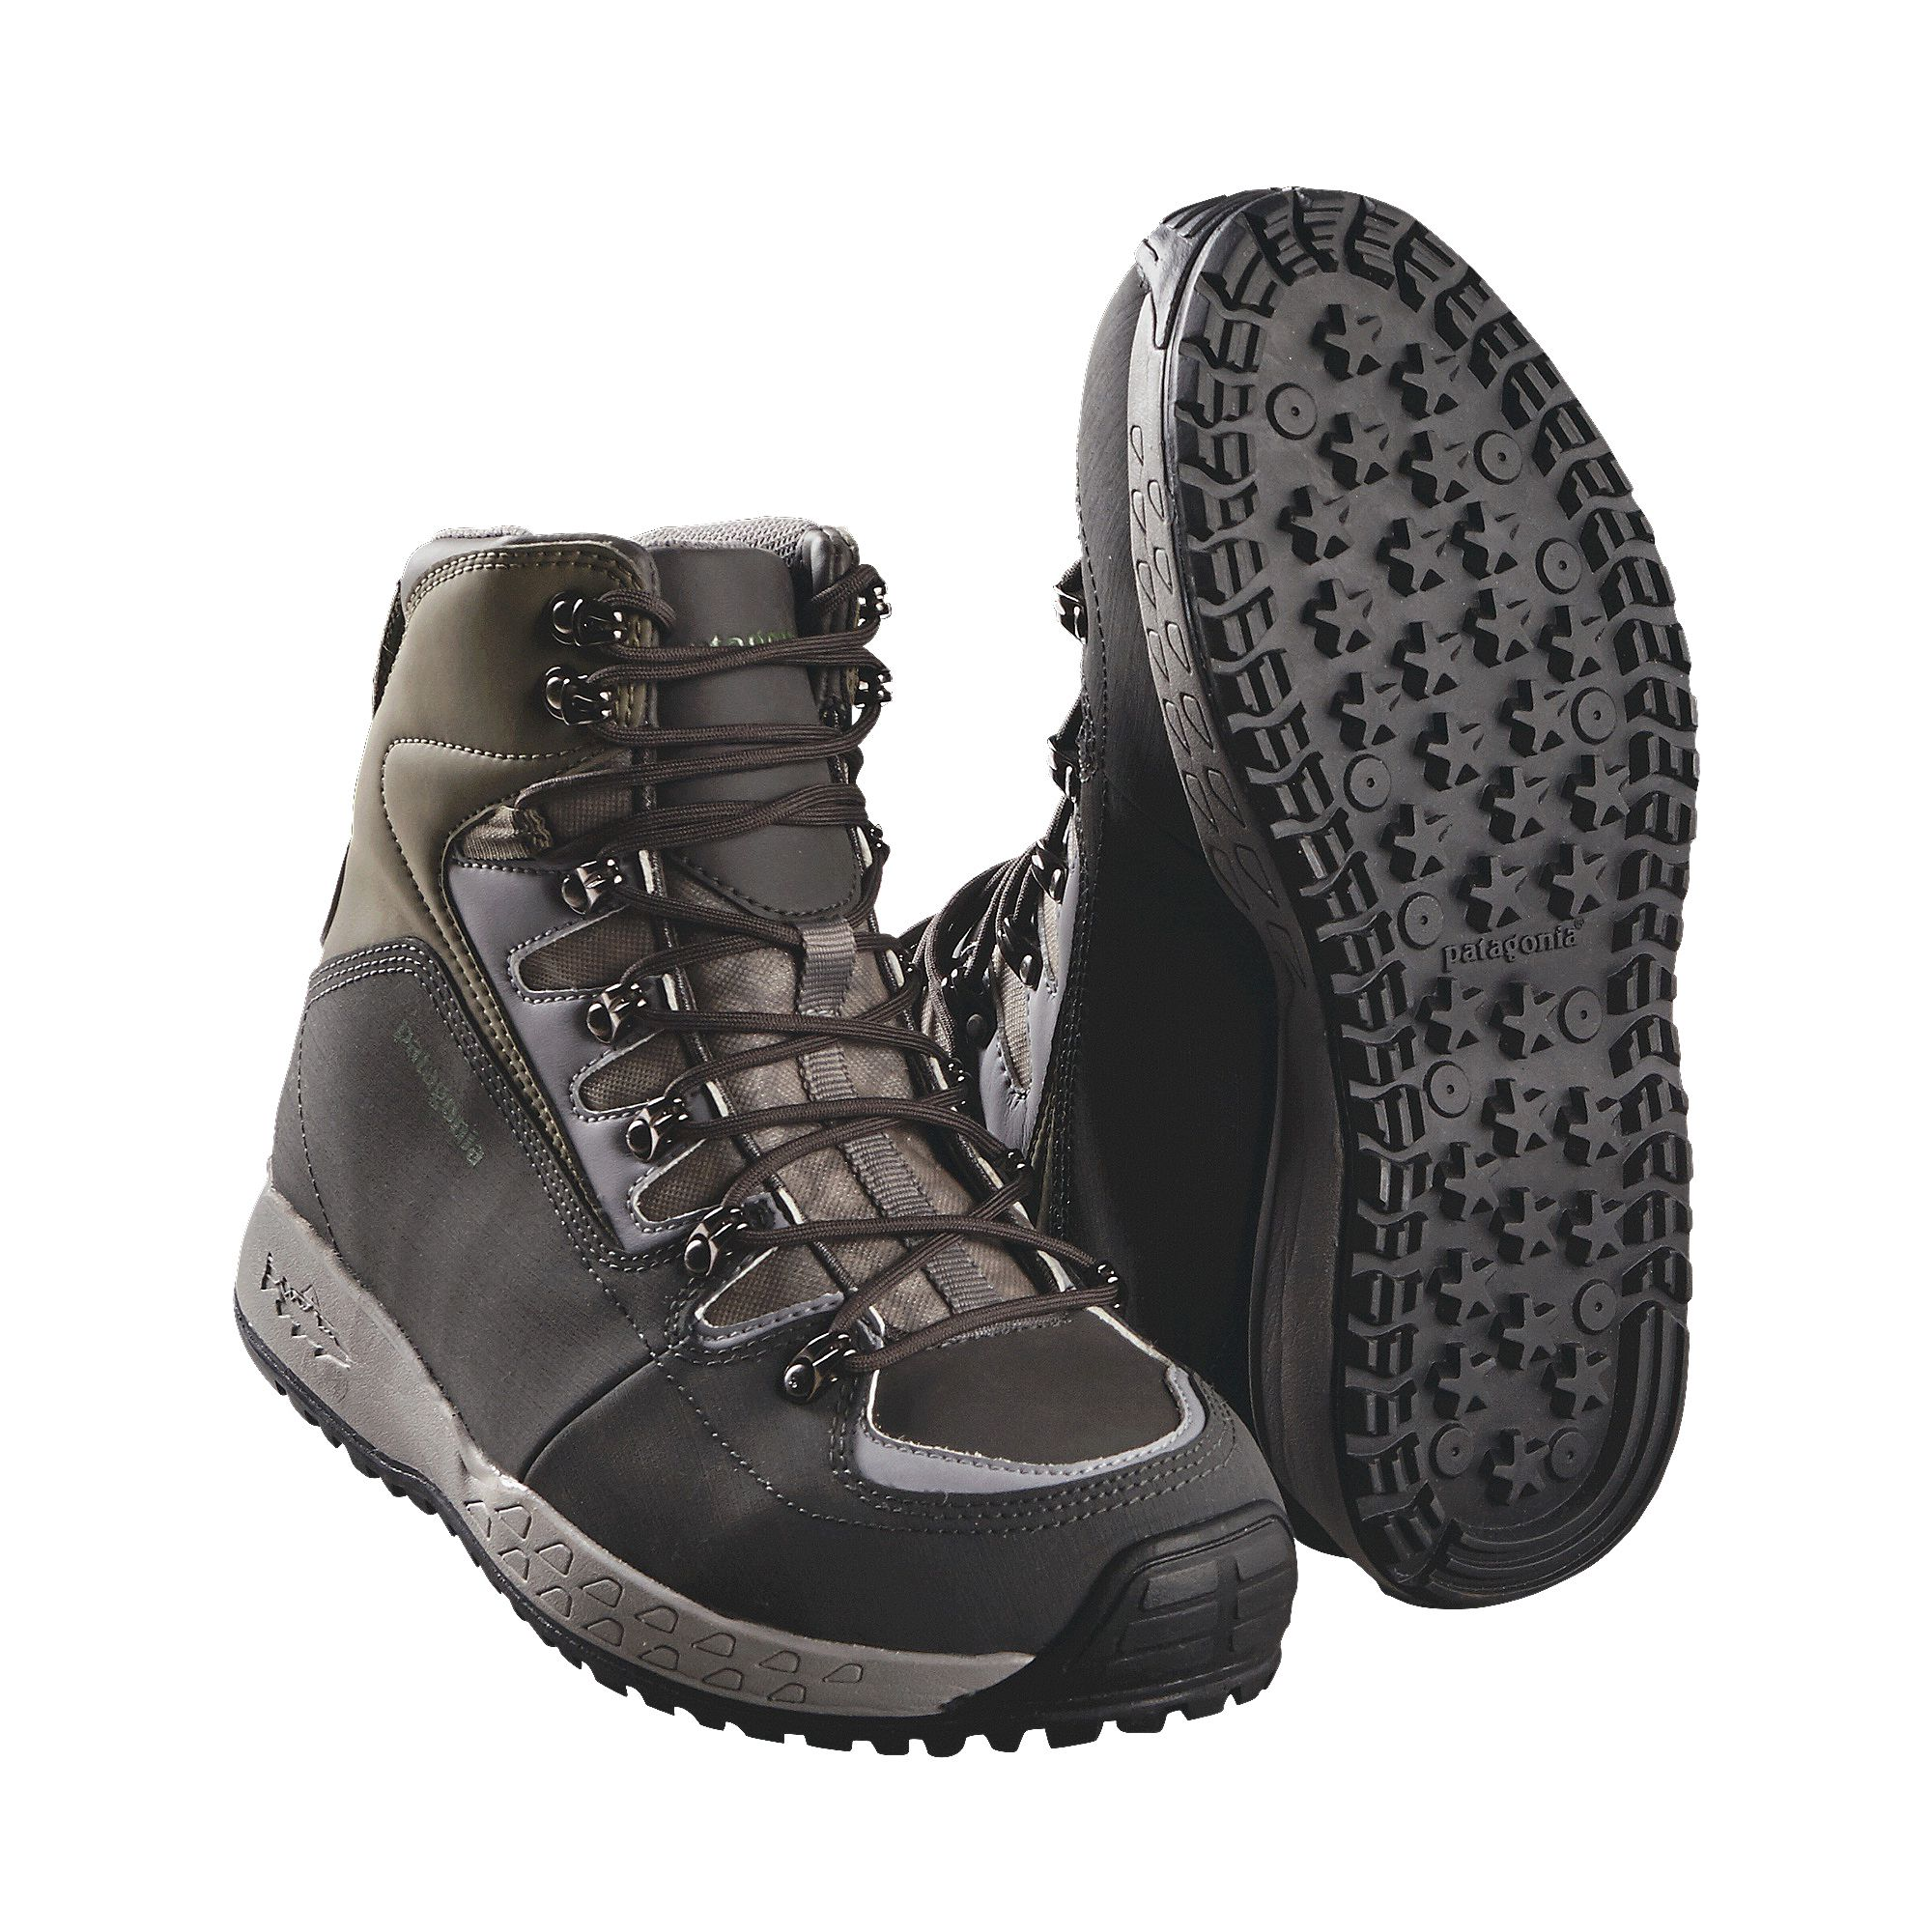 Patagonia Ultralight Wading Boots-Sticky